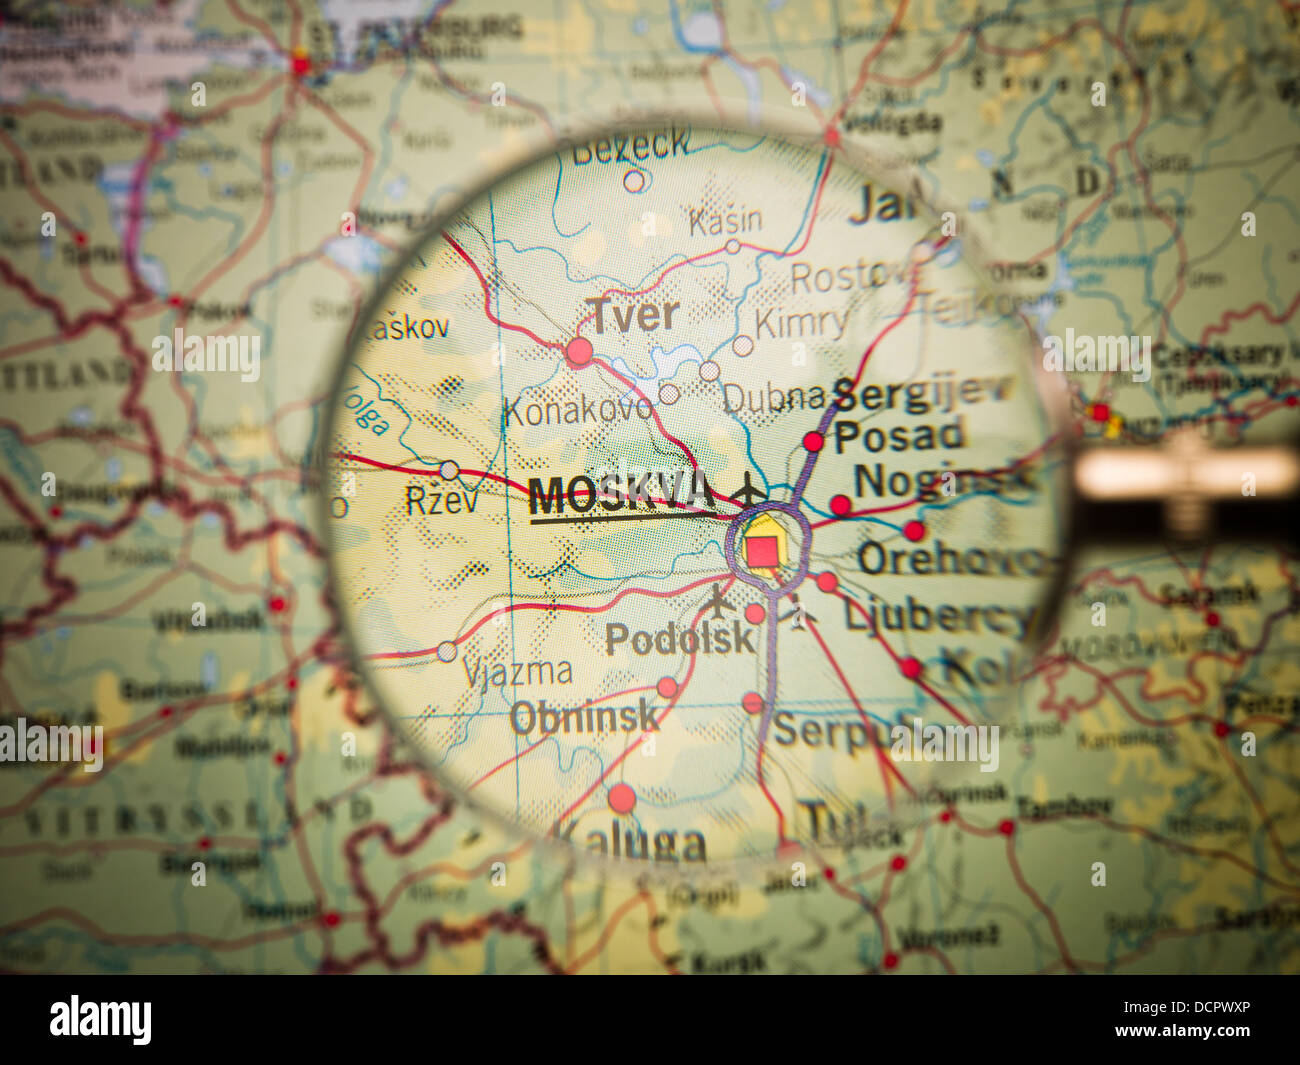 Moscow map Stock Photo: 59510270 - Alamy on markovo russia map, nyagan russia map, krasnogorsk russia map, kalmykia russia map, altai krai russia map, serpukhov russia map, moscow russia map, stavropol russia map, khakassia russia map, severomorsk russia map, birobidzhan russia map, yurga russia map, donetsk russia map, ukhta russia map, zagorsk russia map, kirovsk russia map, elista russia map, sakha russia map, tallinn russia map, sevastopol russia map,